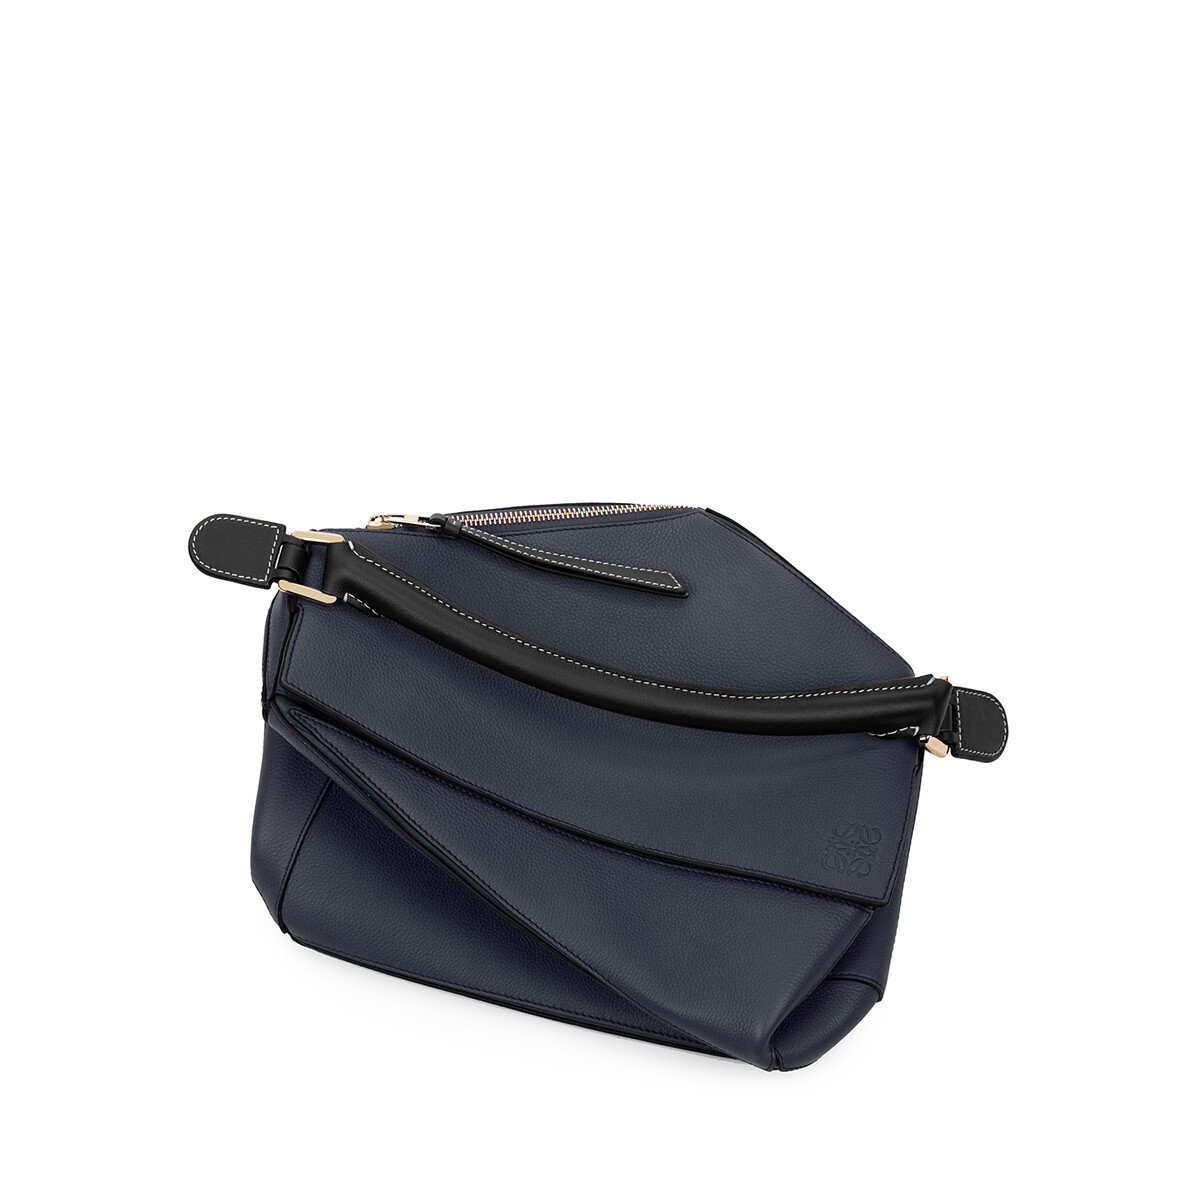 LOEWE Puzzle Bag Midnight Blue/Black front